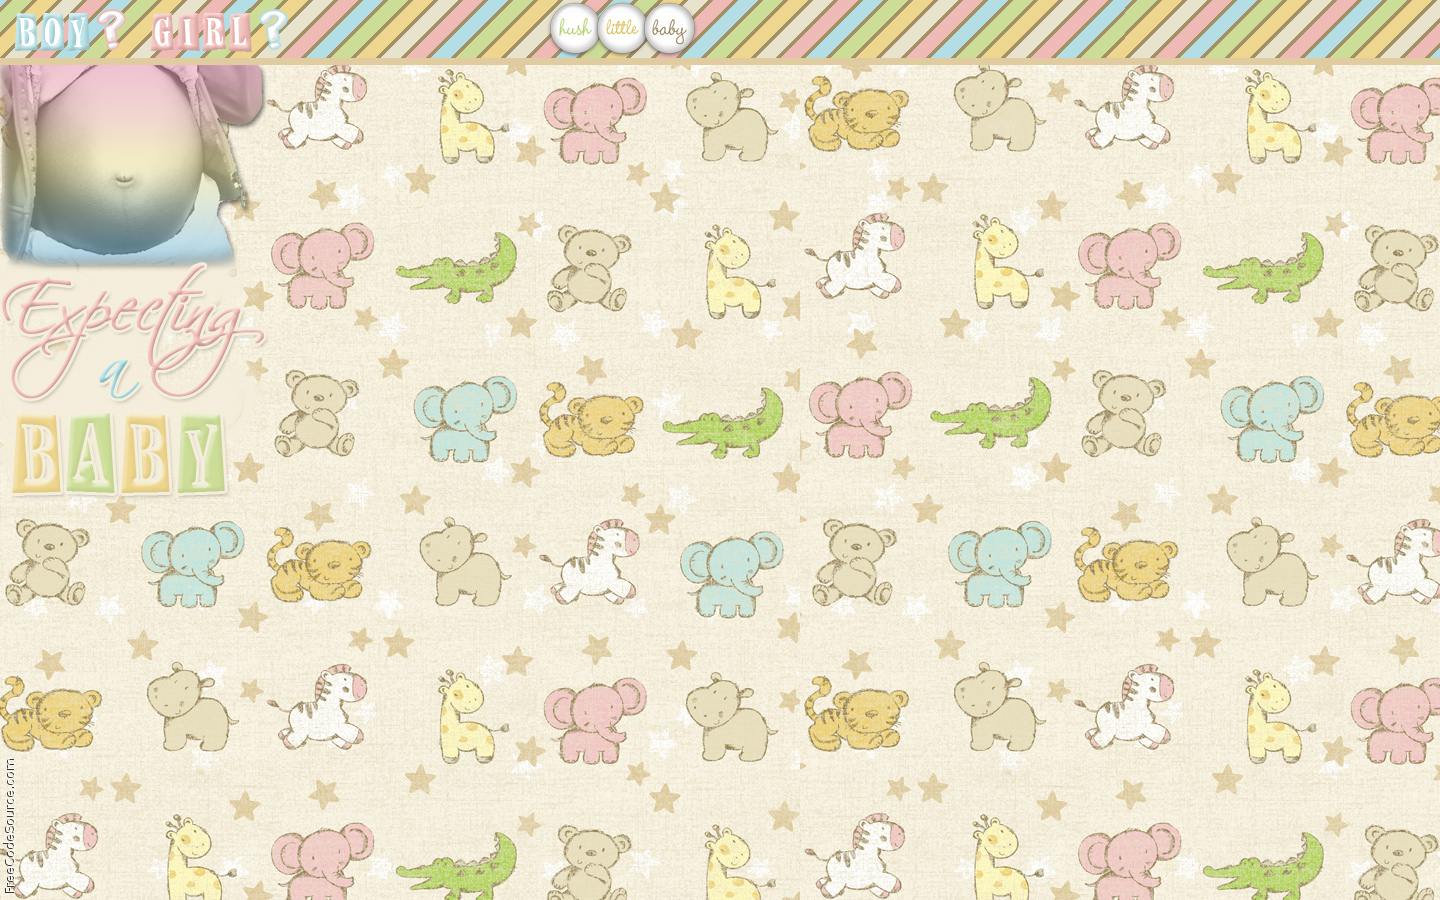 Expecting Baby   Unisex Formspring Backgrounds Expecting Baby 1440x900